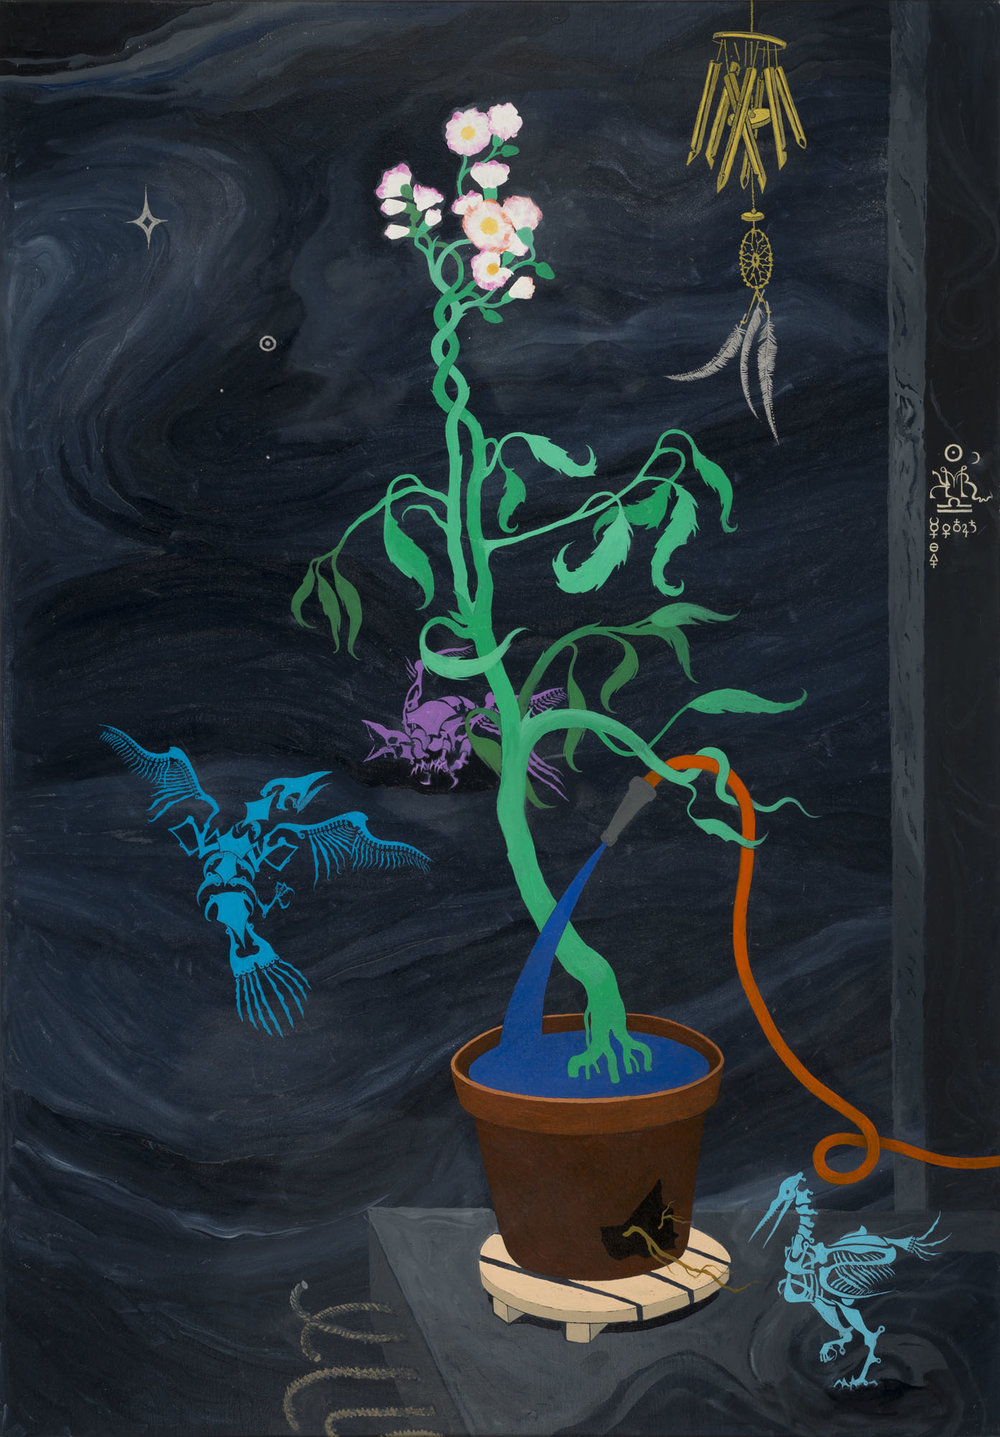 Mi Kafchin   Self-Sufficient Plant , 2016  Oil on canvas  181 x 126 cm  71.25 x 50 inches